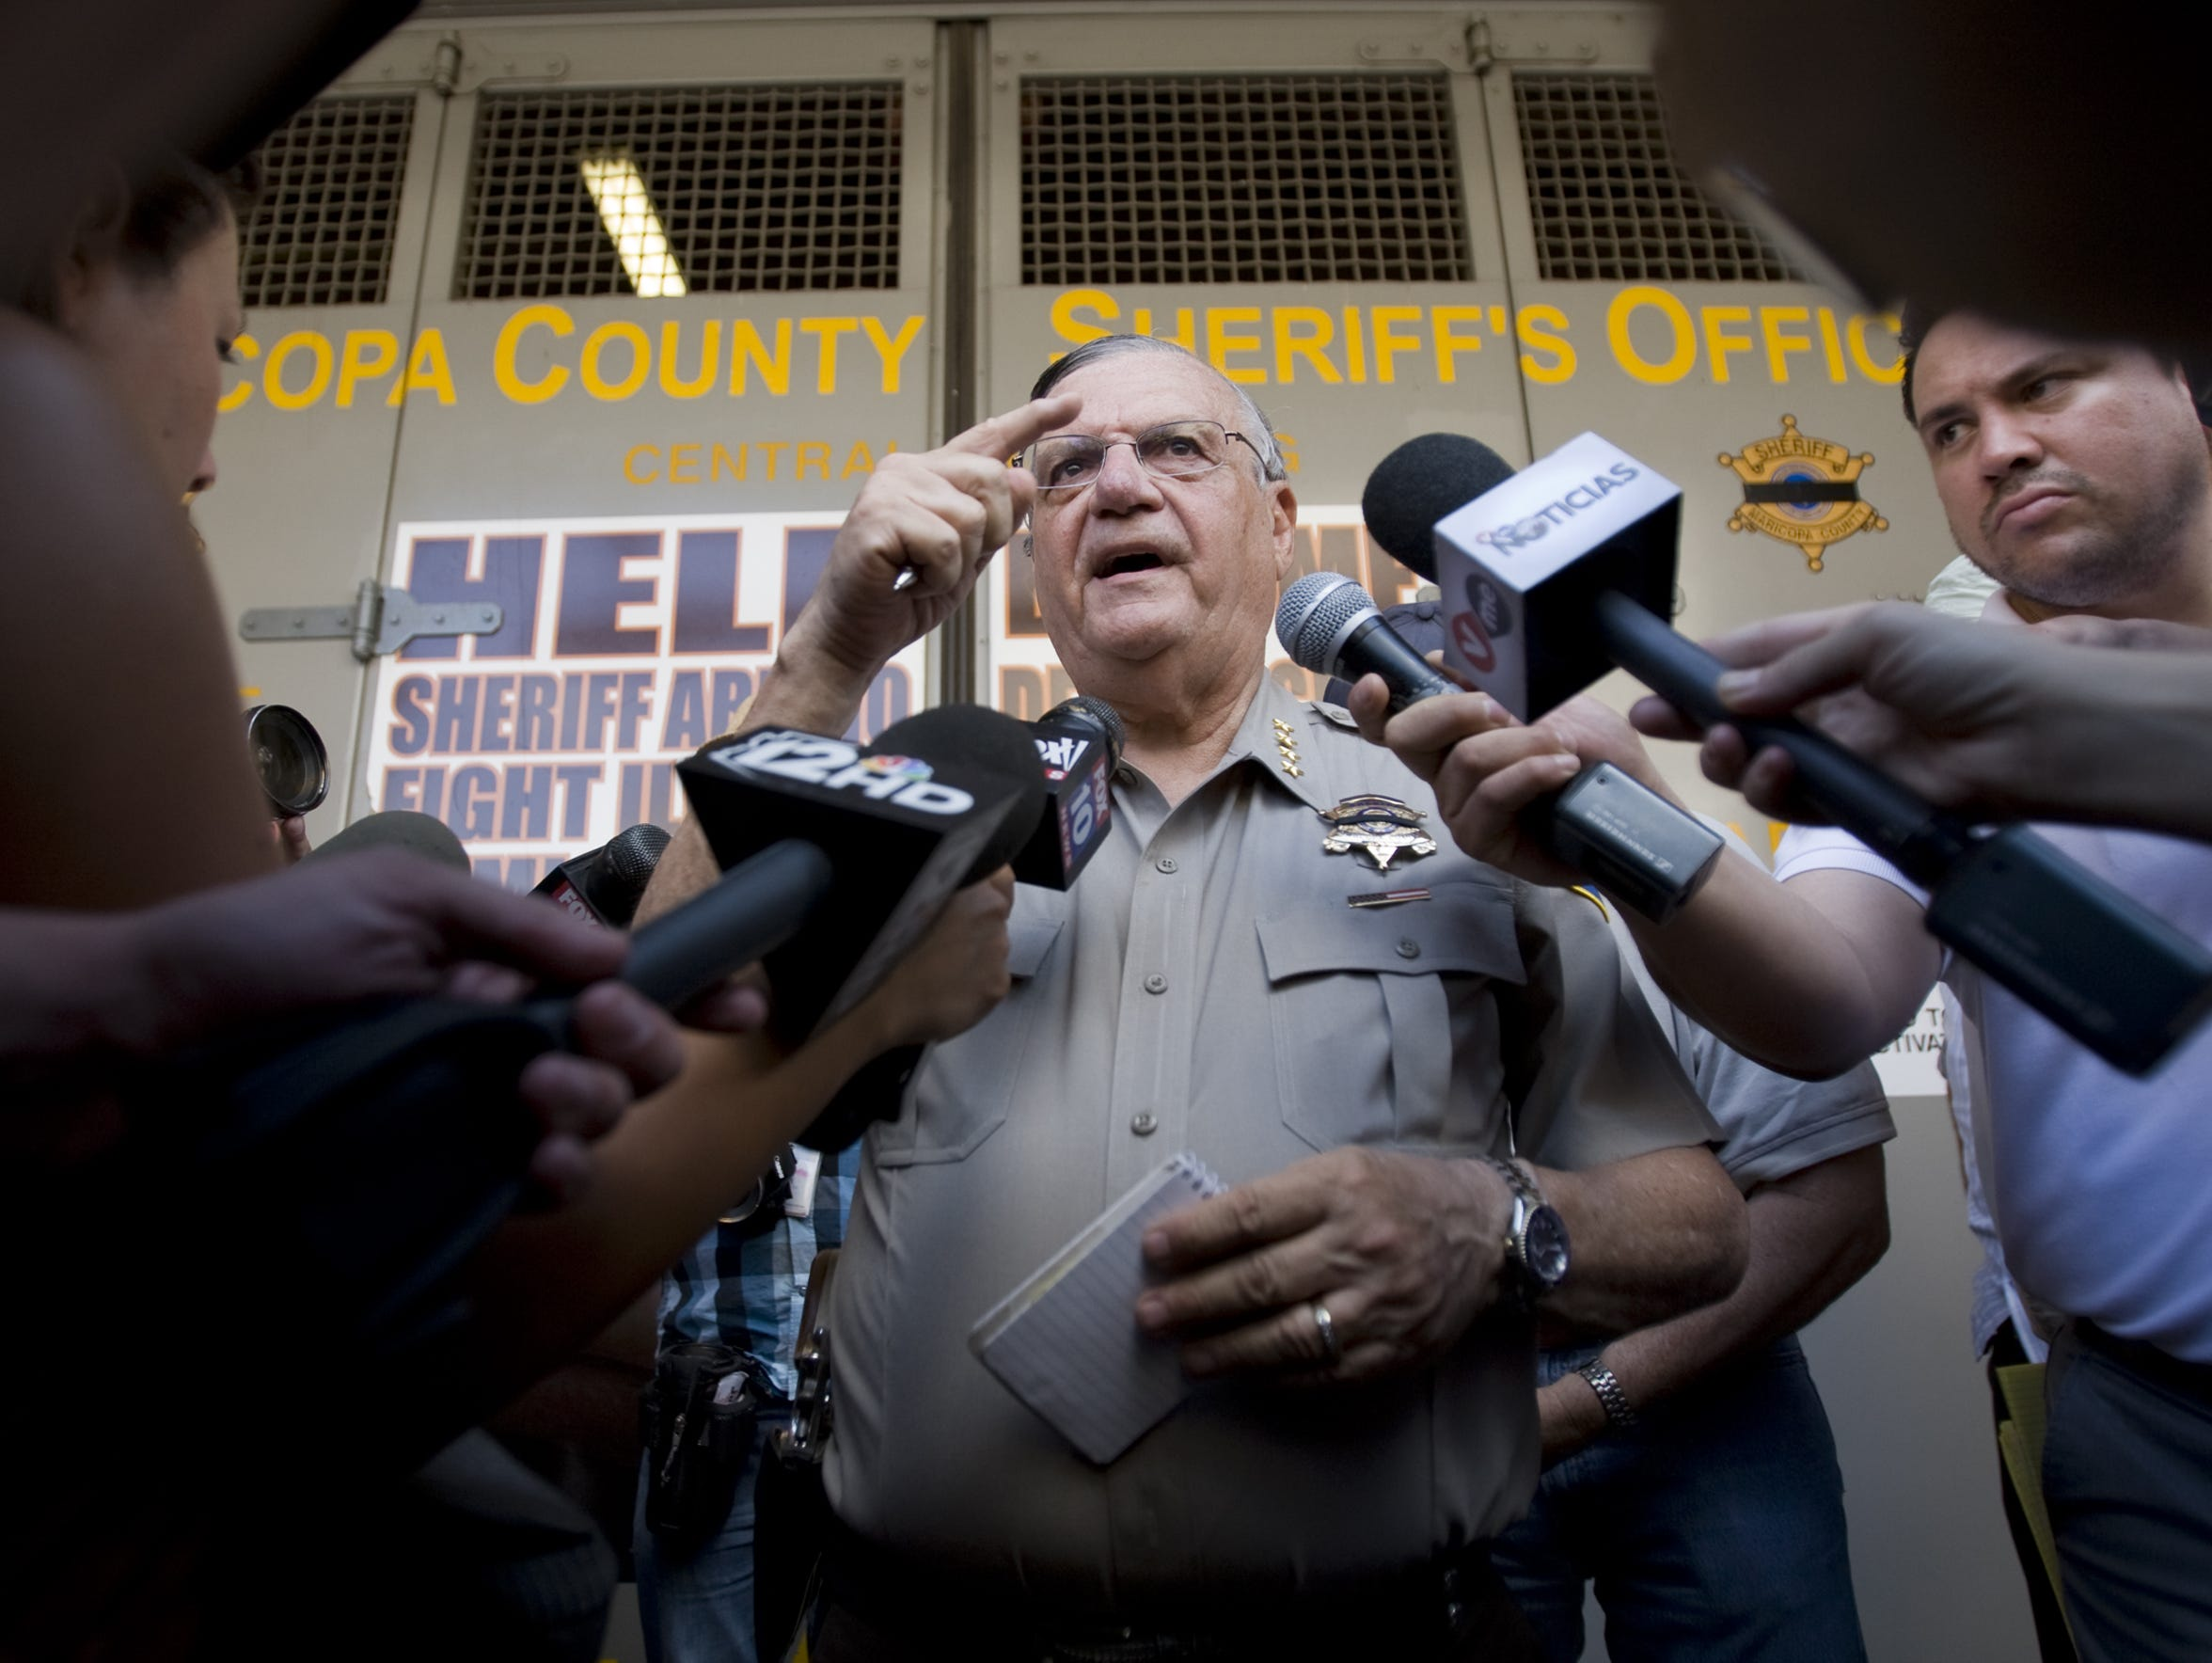 Arpaio speaks to media members in 2010, the year the